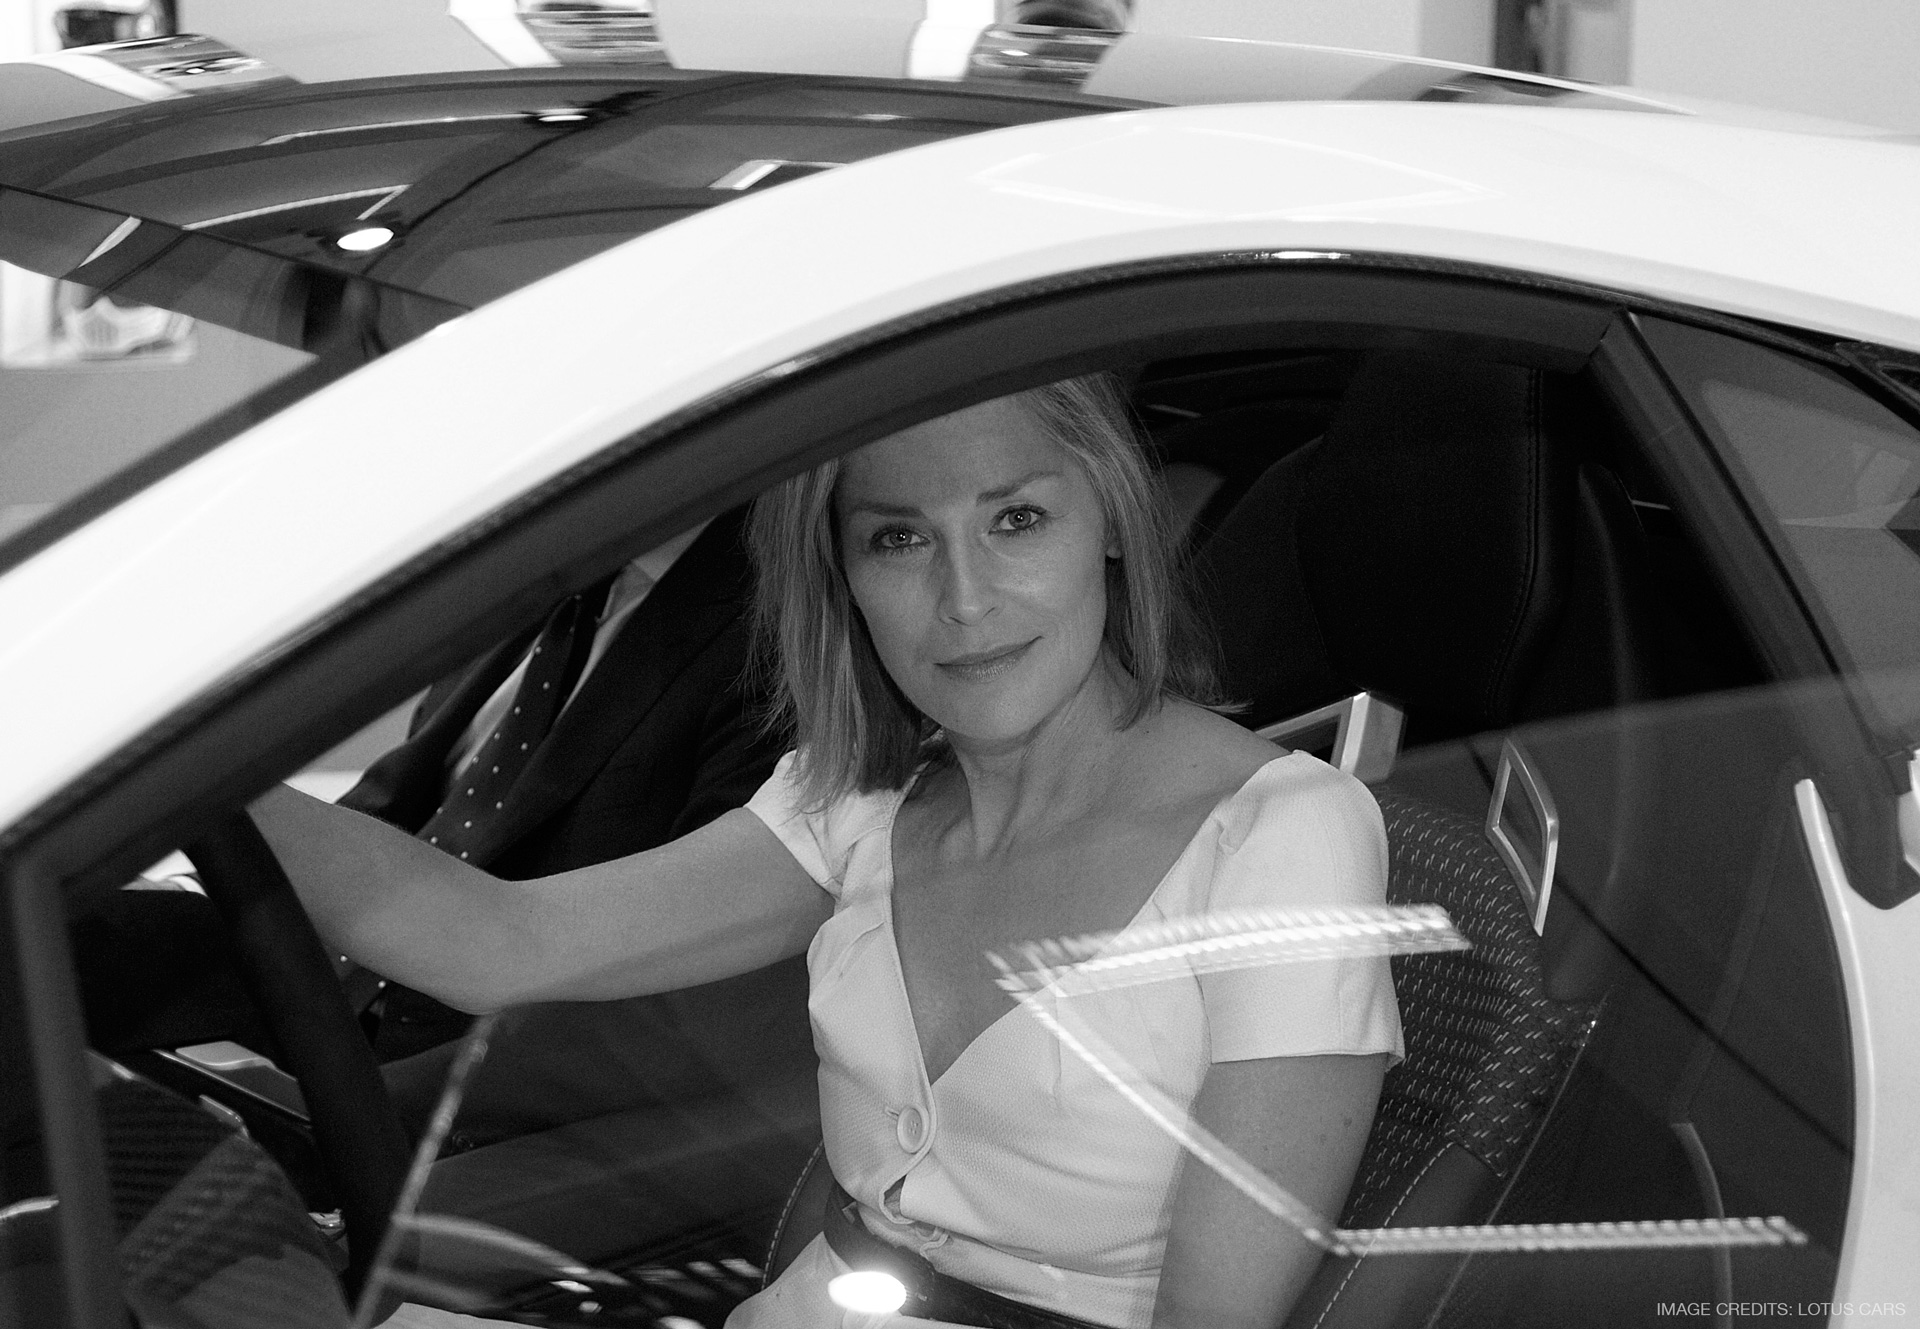 Sharon Stone sitting in the Lotus Esprit Concept car interior with seat designed by Miroslav Dimitrov